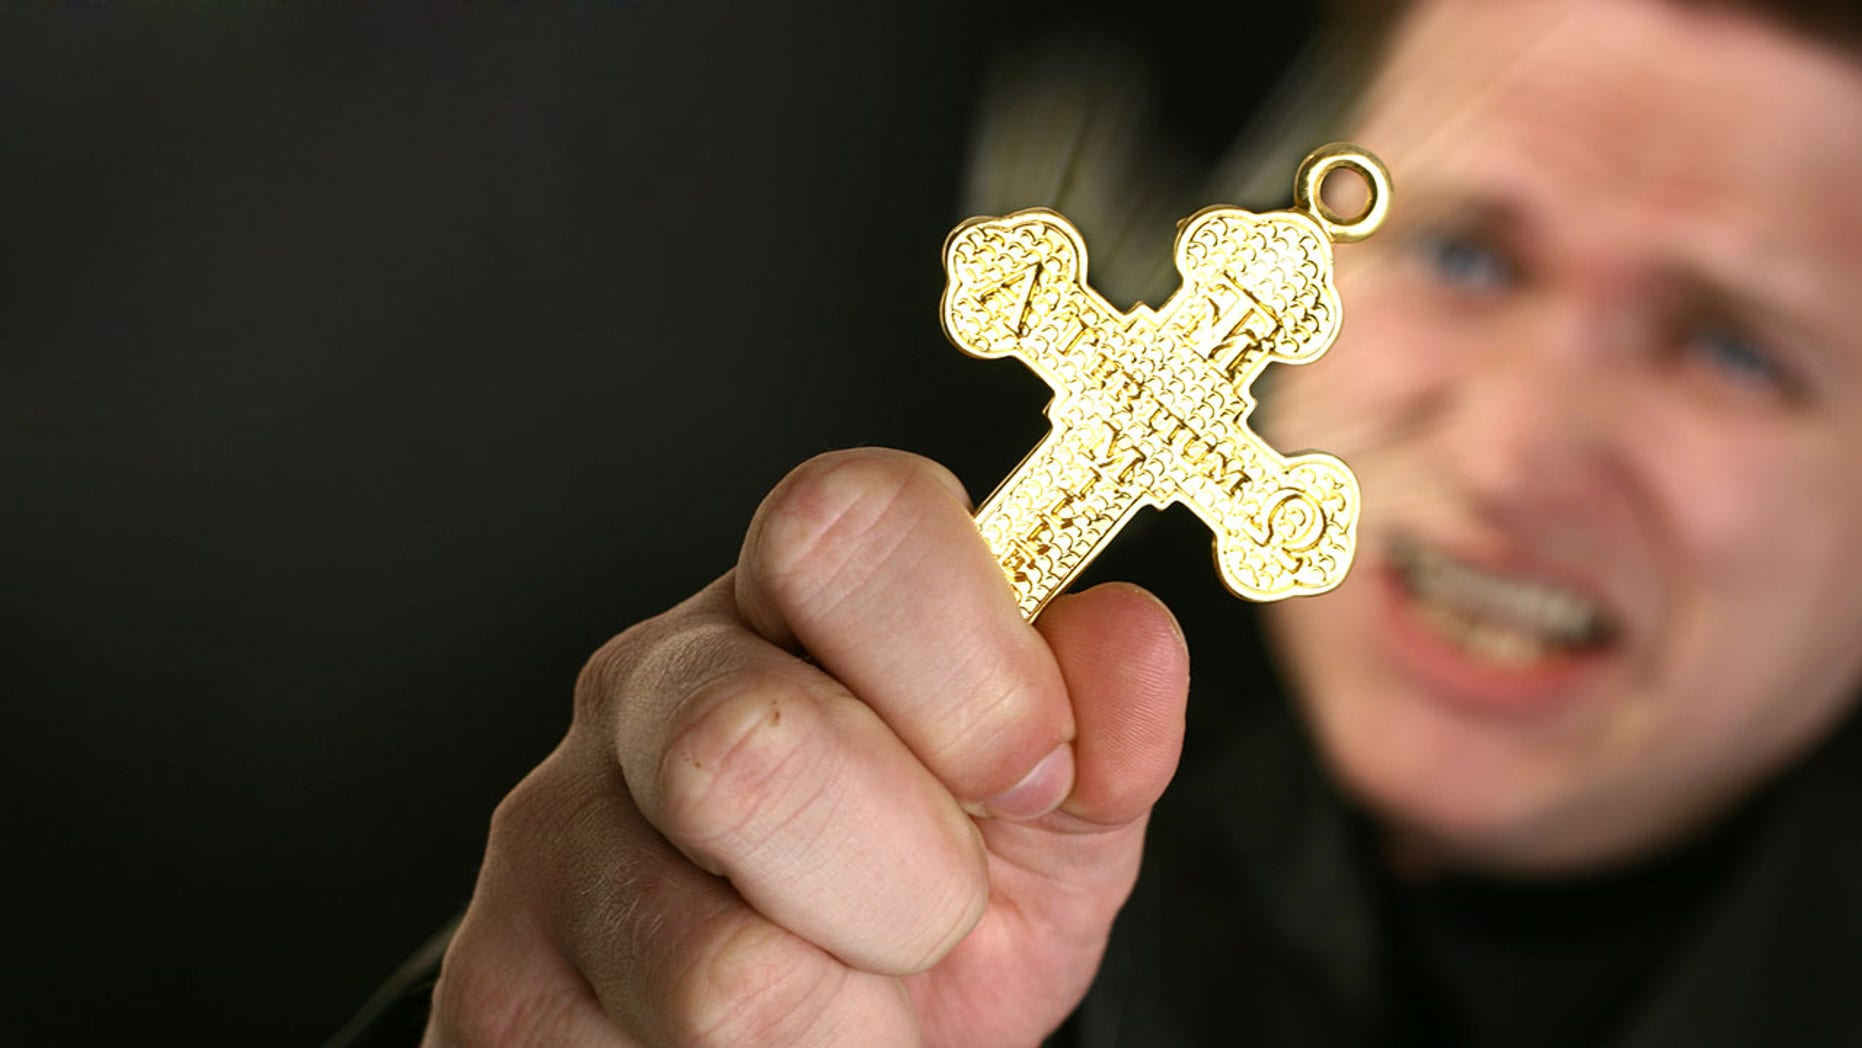 A Kentucky man claims his employer asked him to get an exorcism.